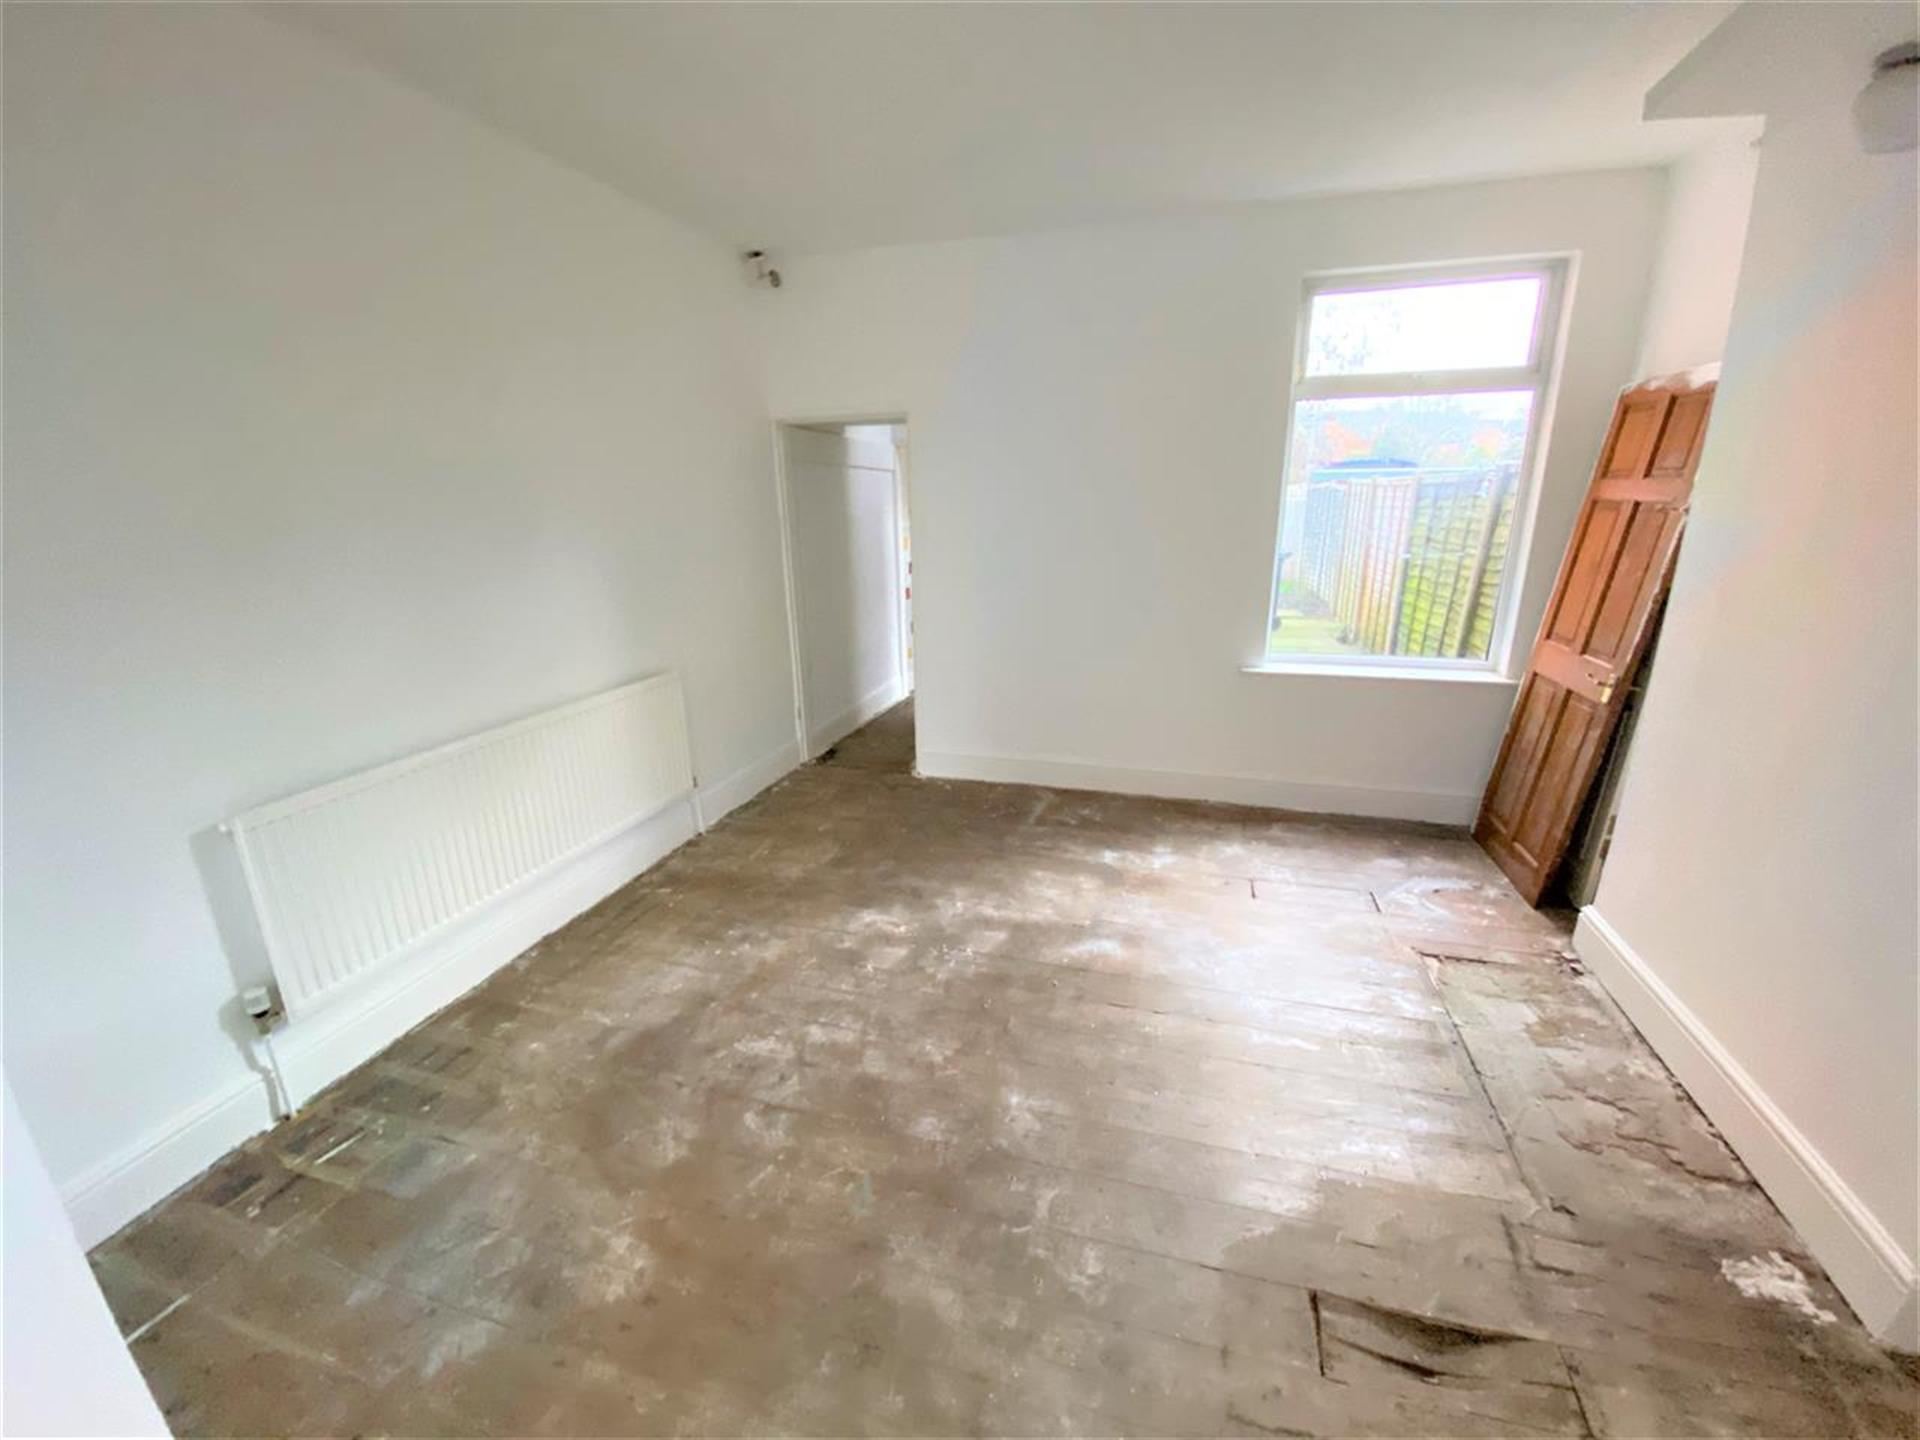 2 Bedroom End Terraced House For Sale - Dining Room Area